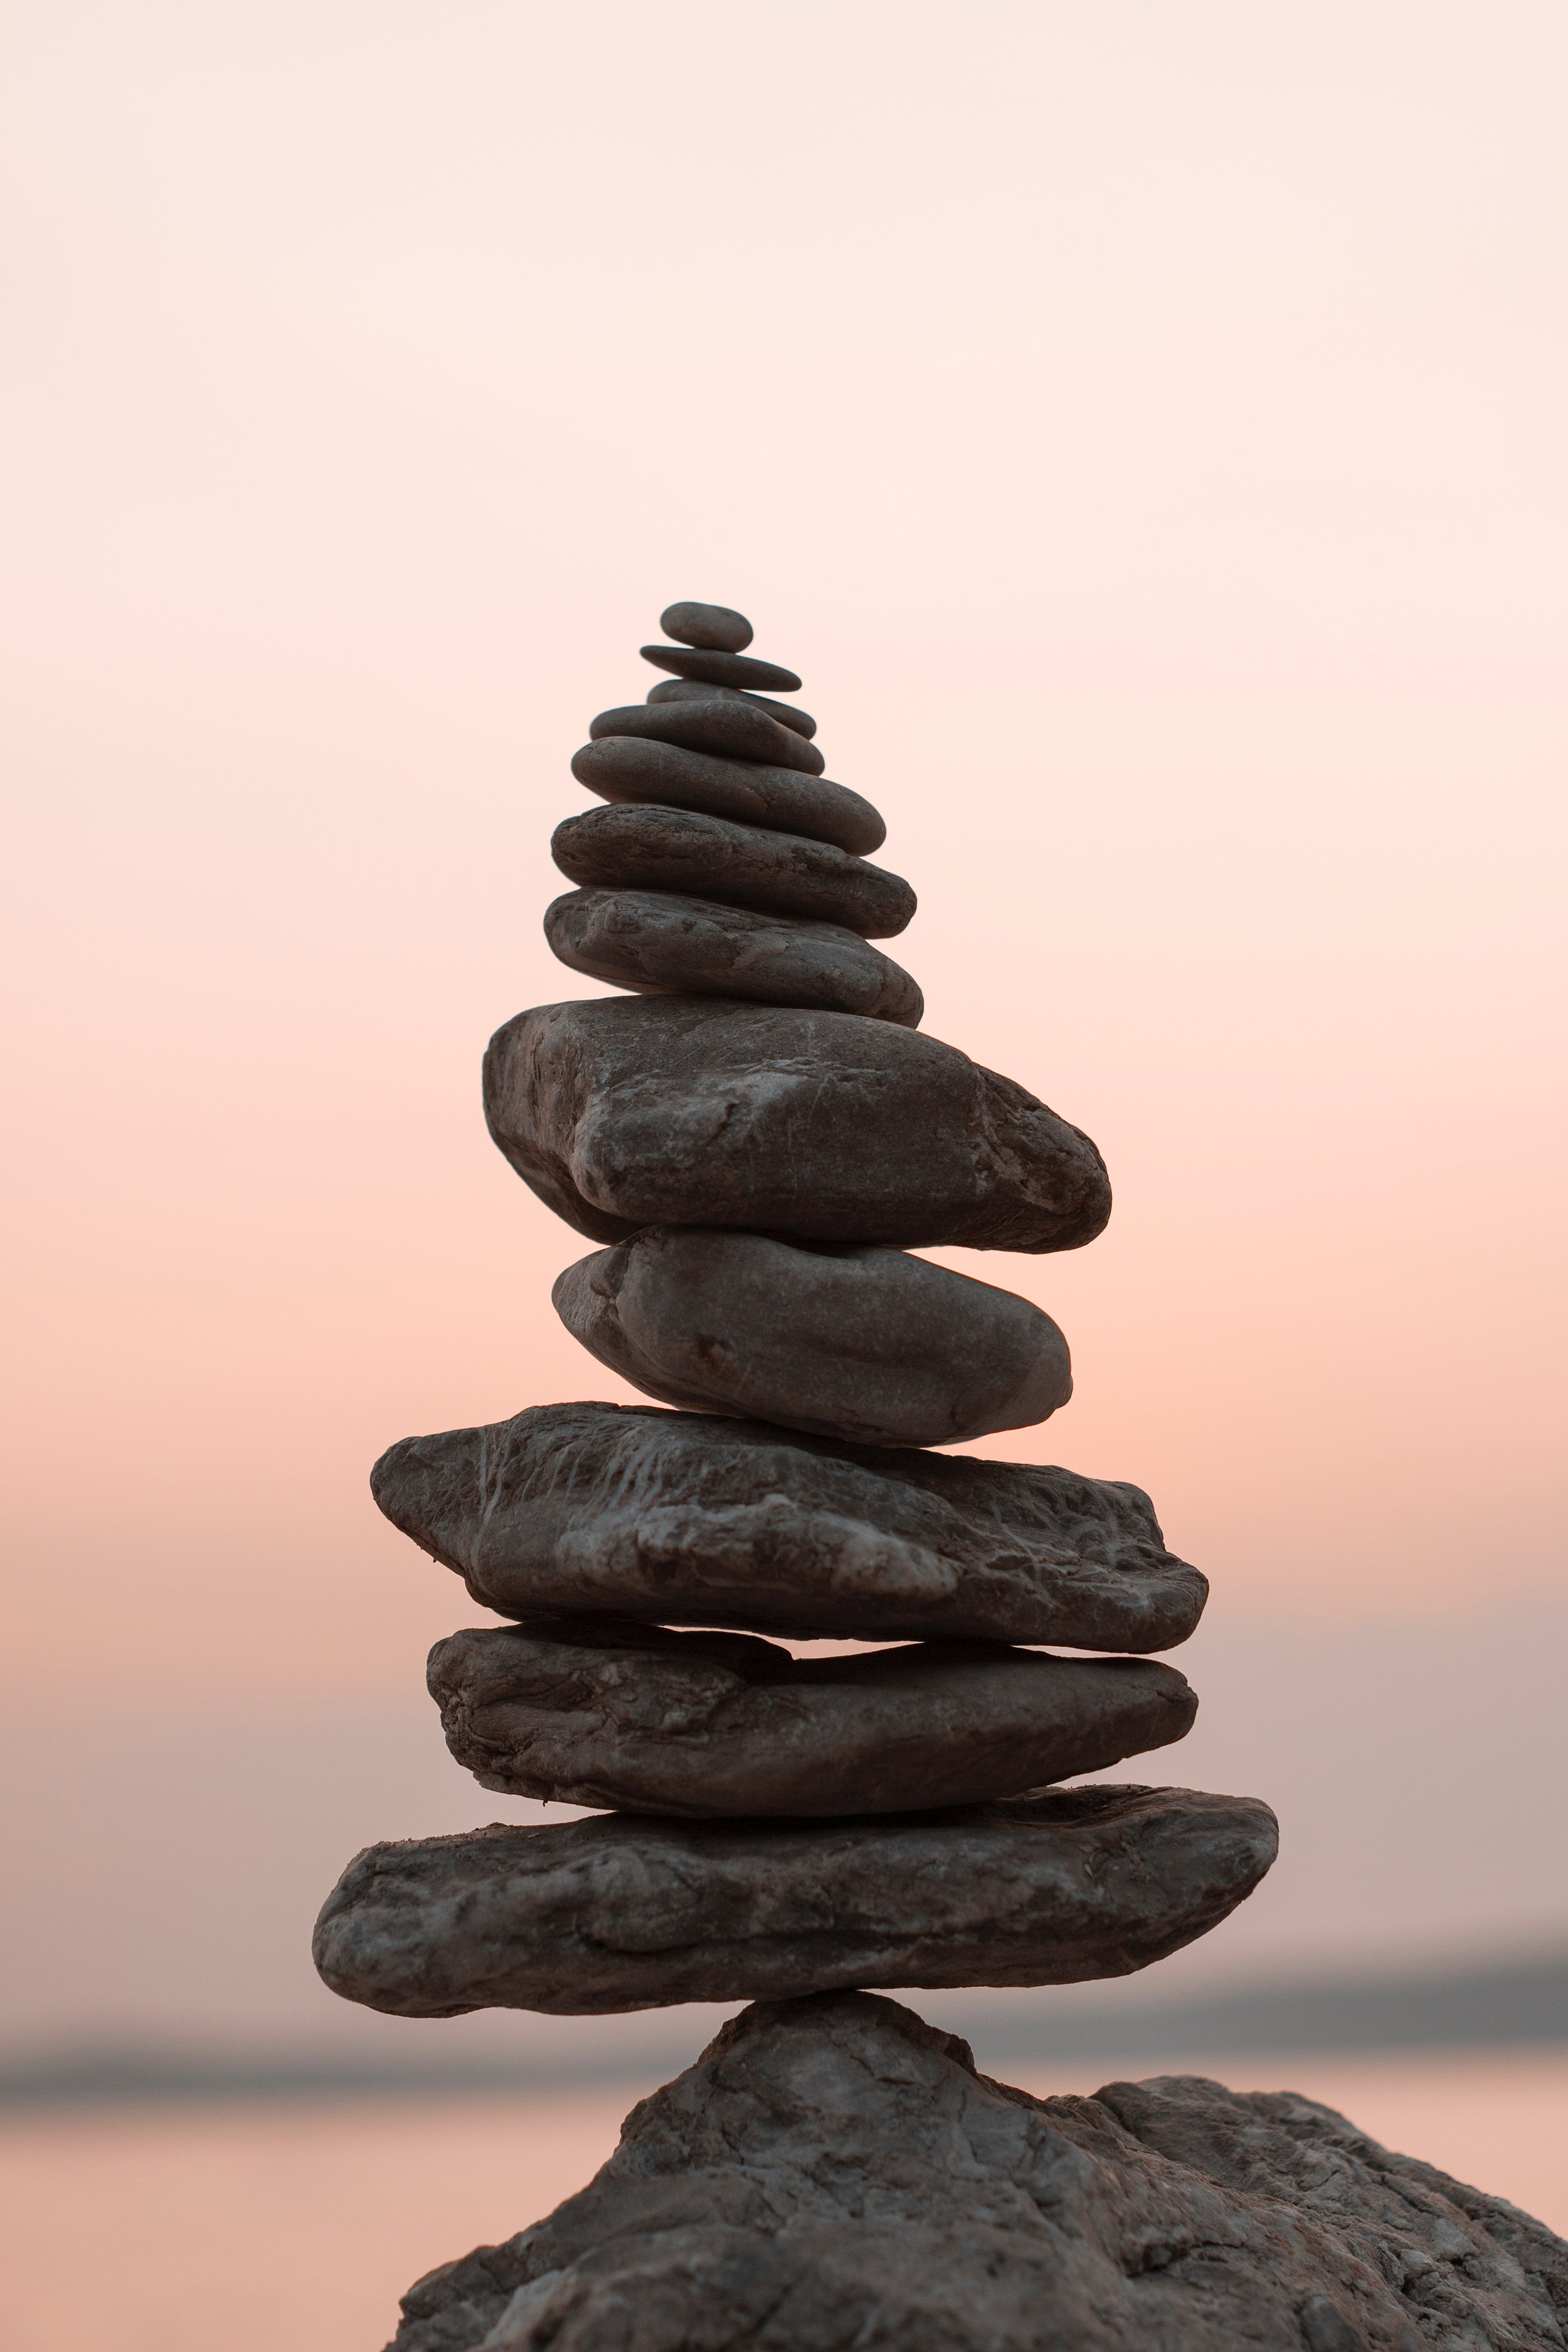 Healing is Possible With Proper Balance. -